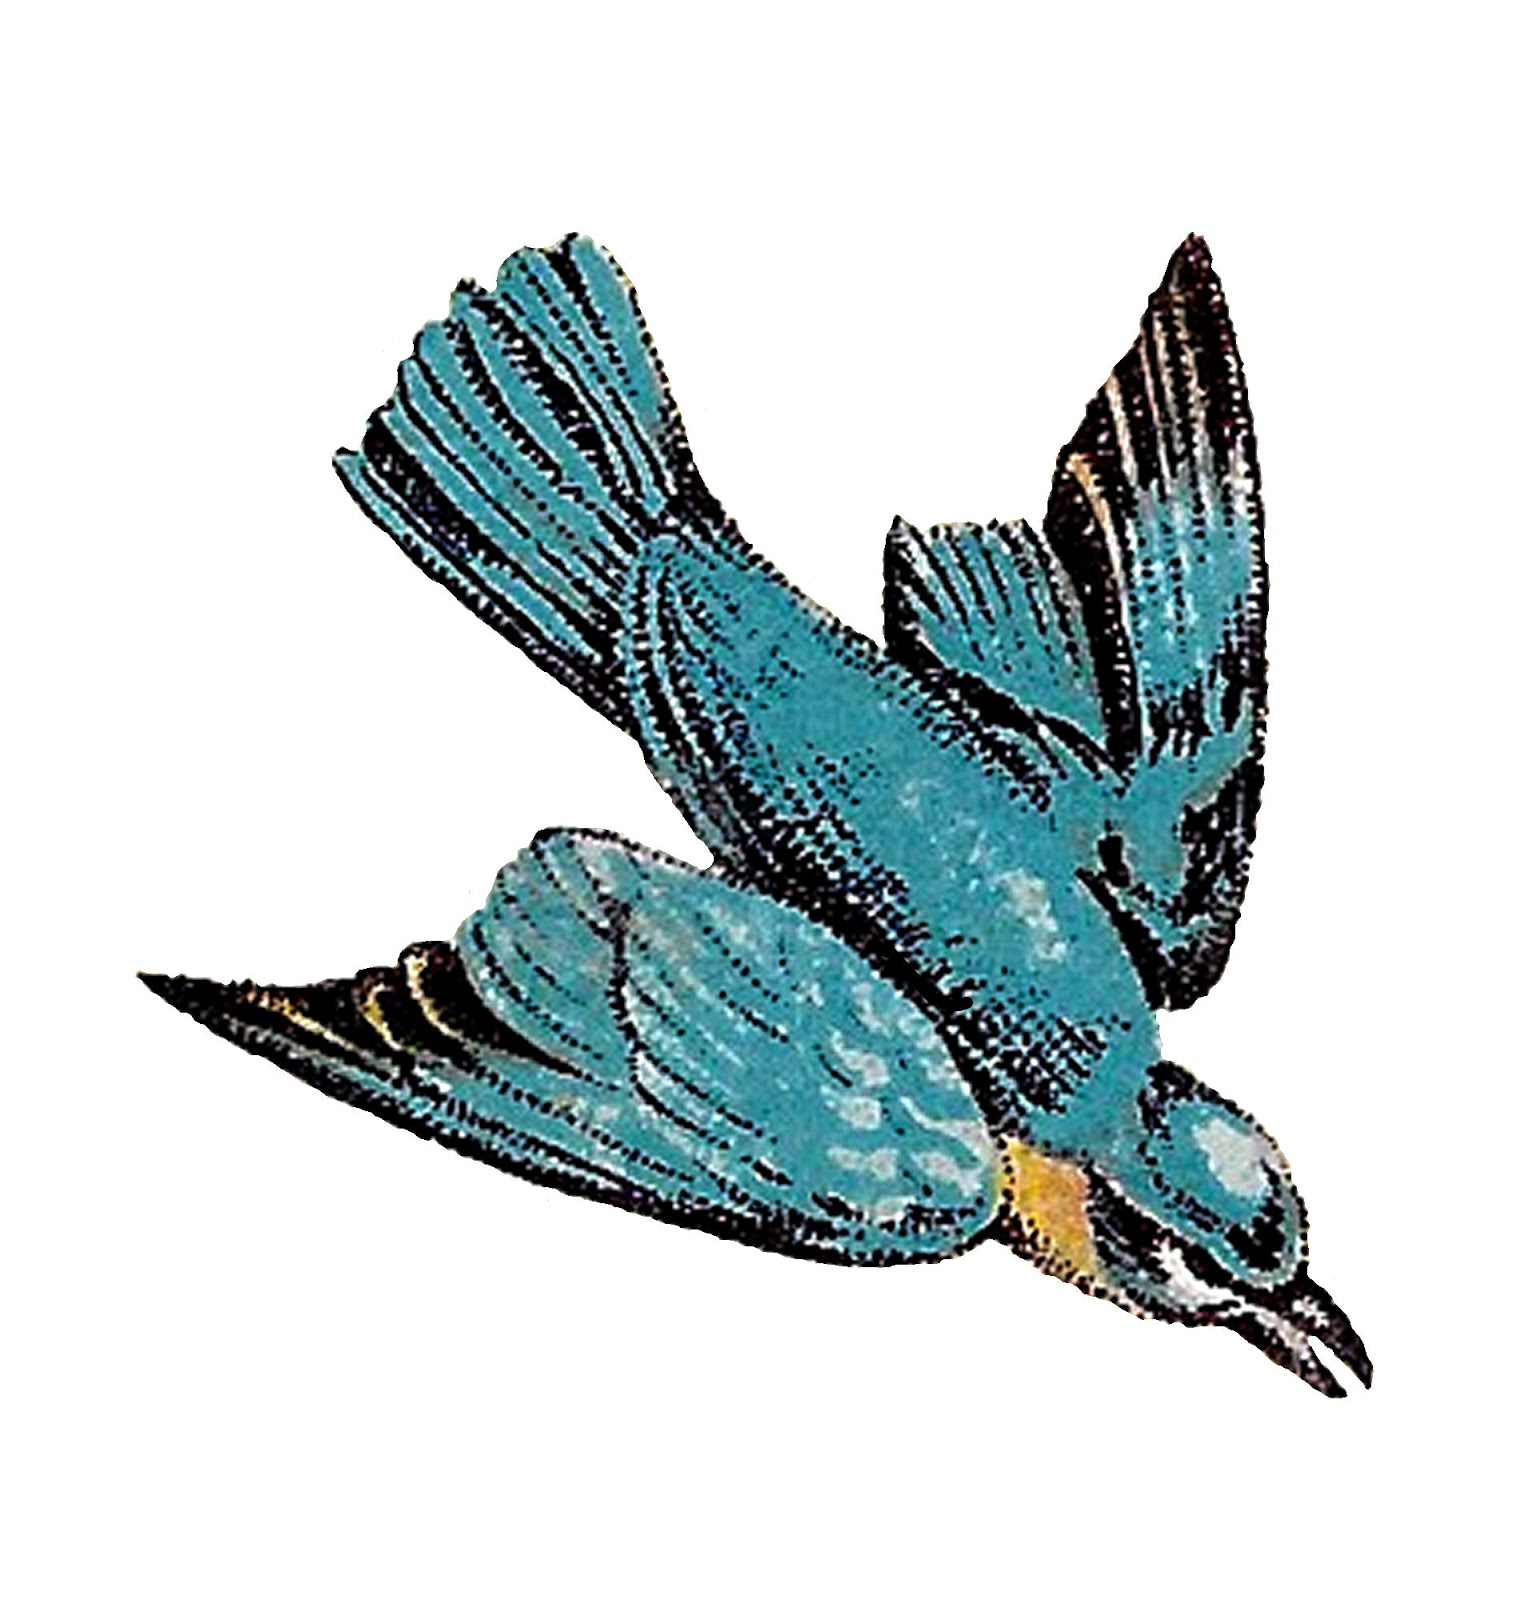 1521x1600 Antique Images Flying Birds Drawings Blue Jay Artwork Animal